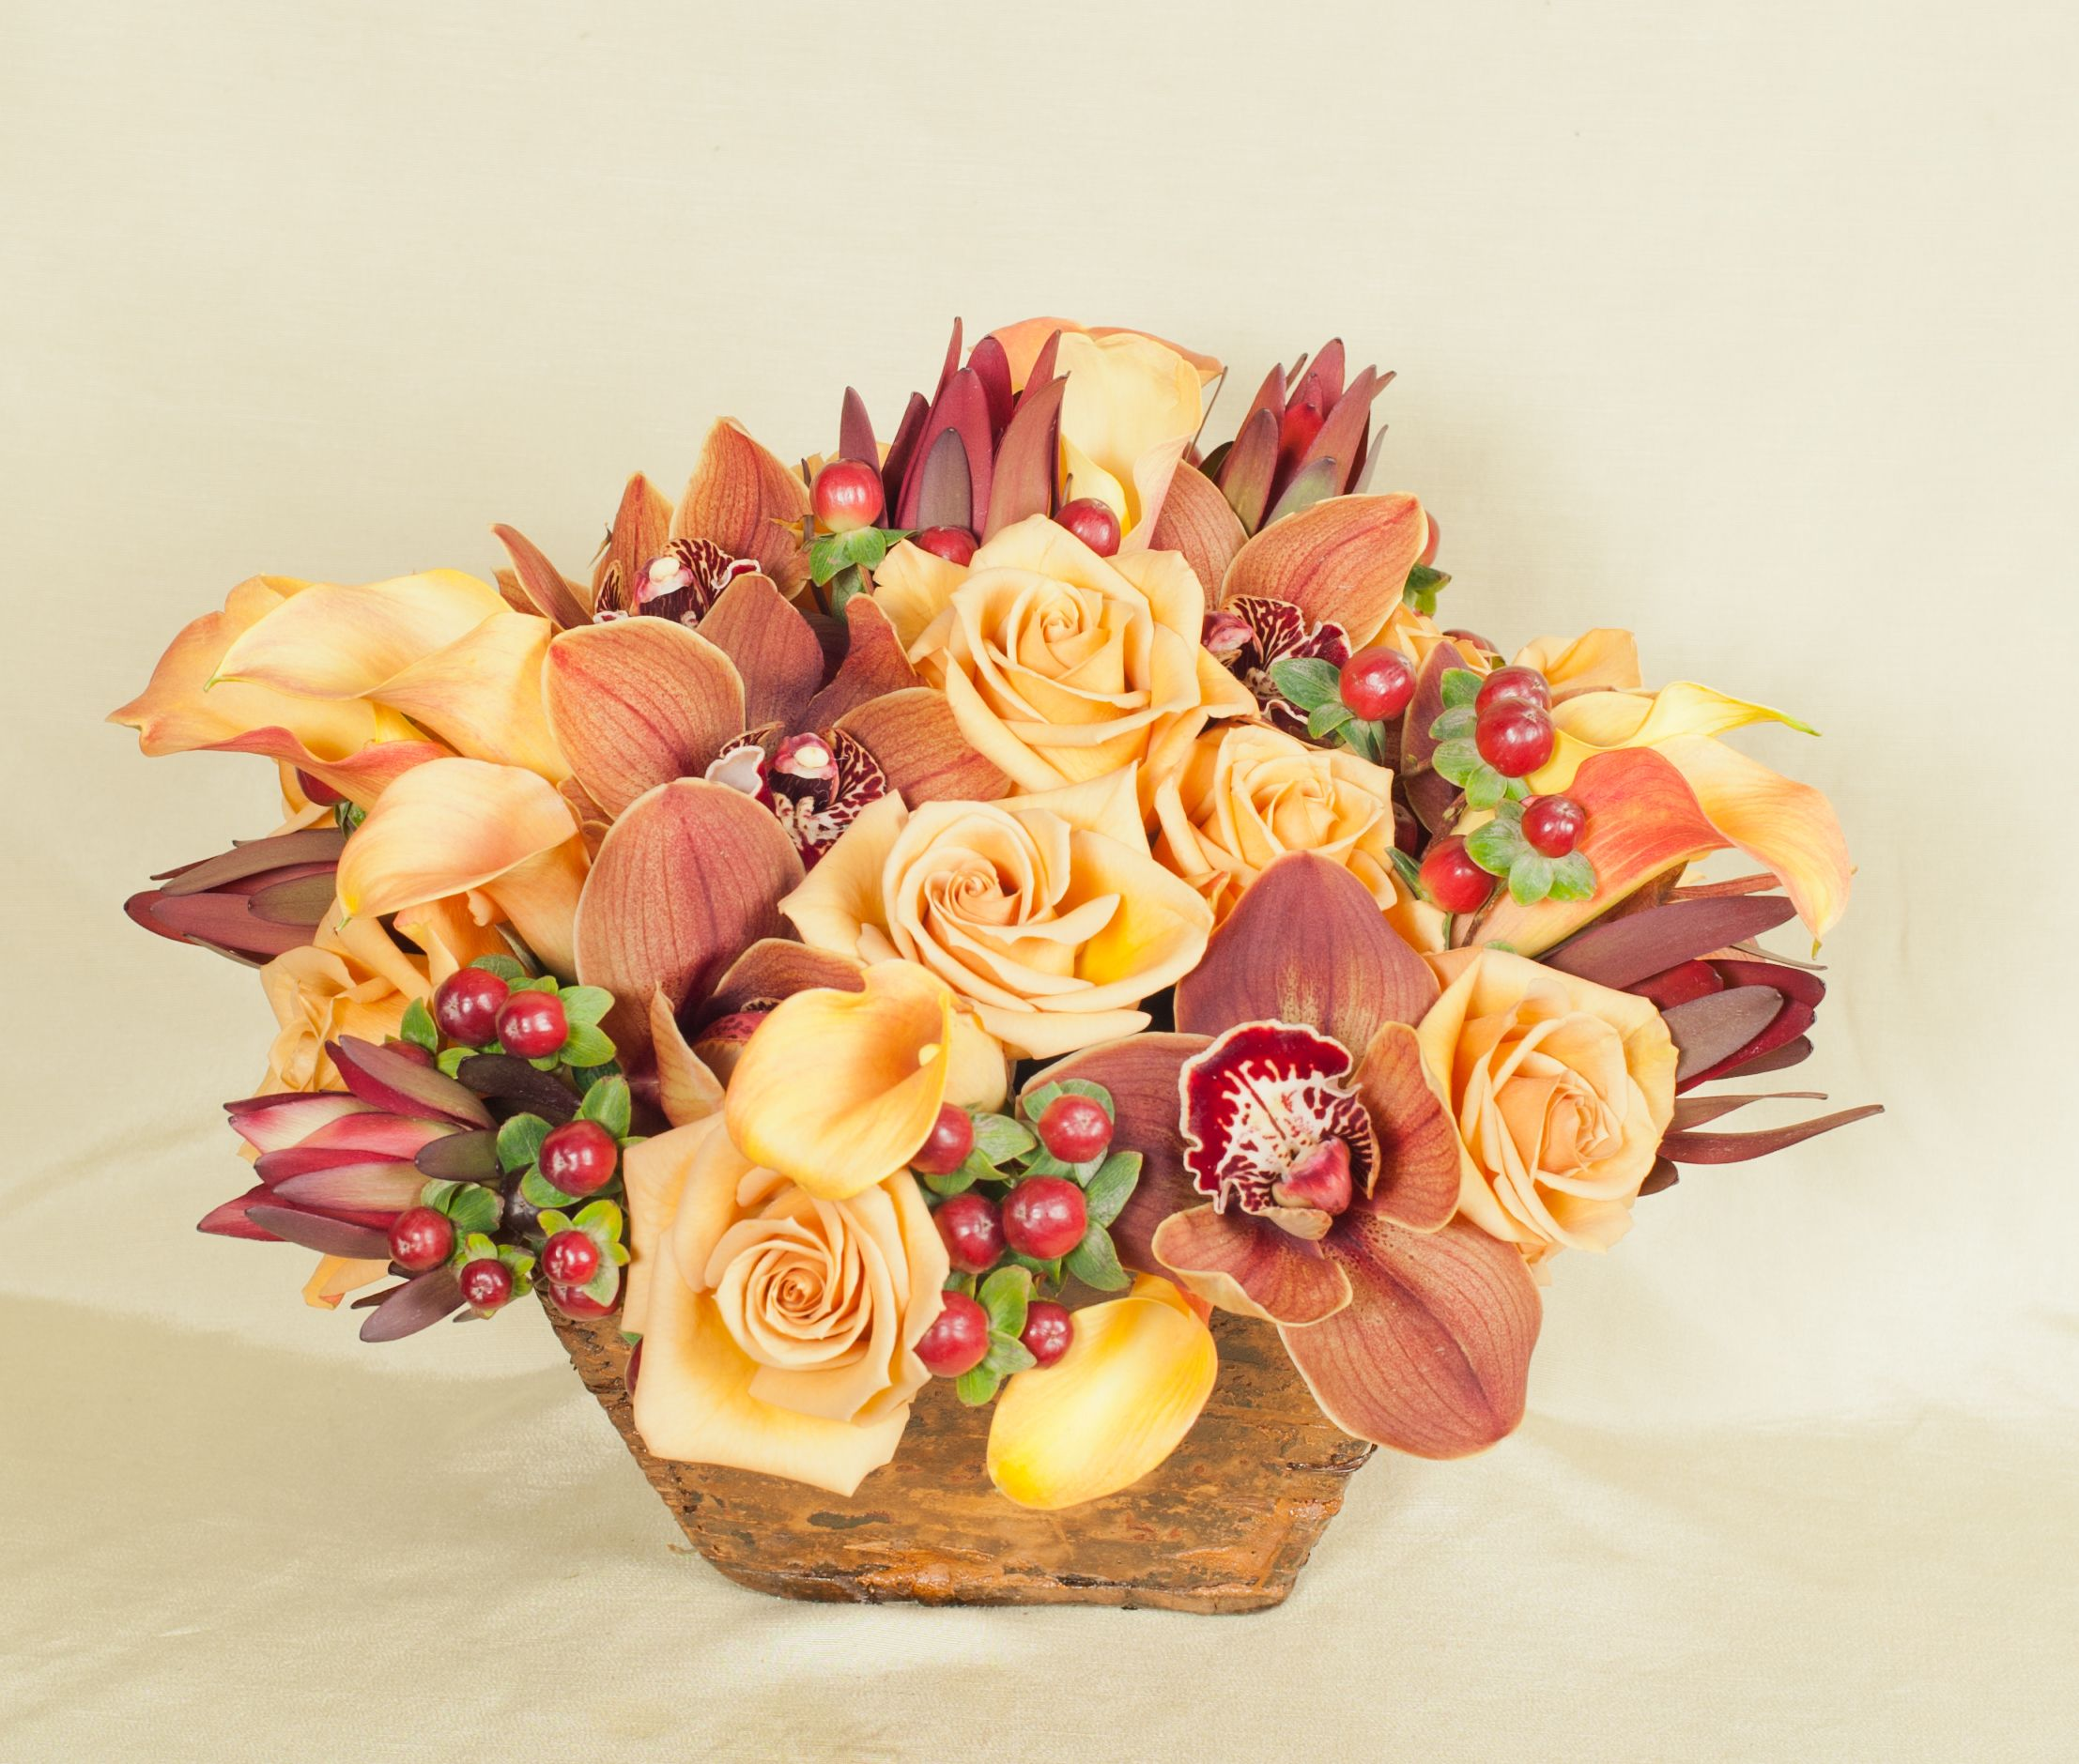 Autumn harvest flowers warm fall floral arrangement in chocolate